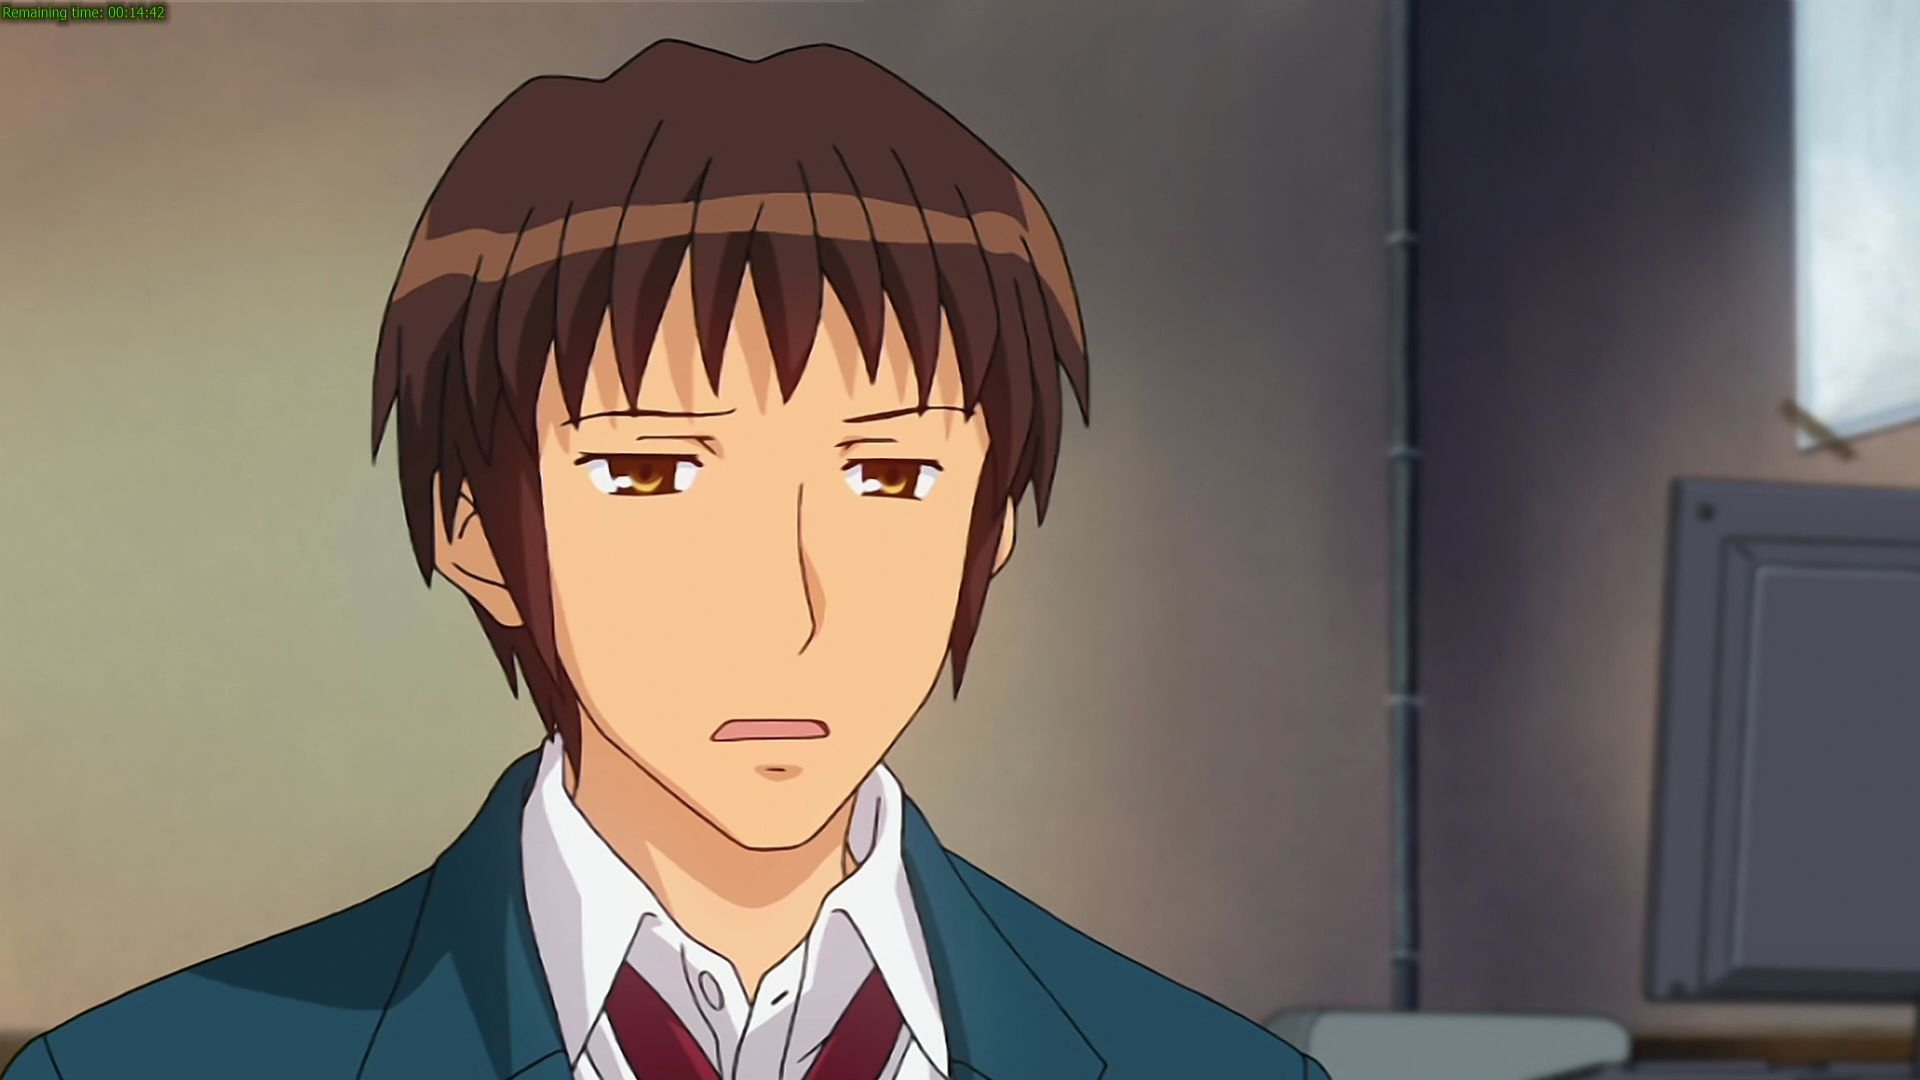 The main male protagonist, who is also the best character of this series.